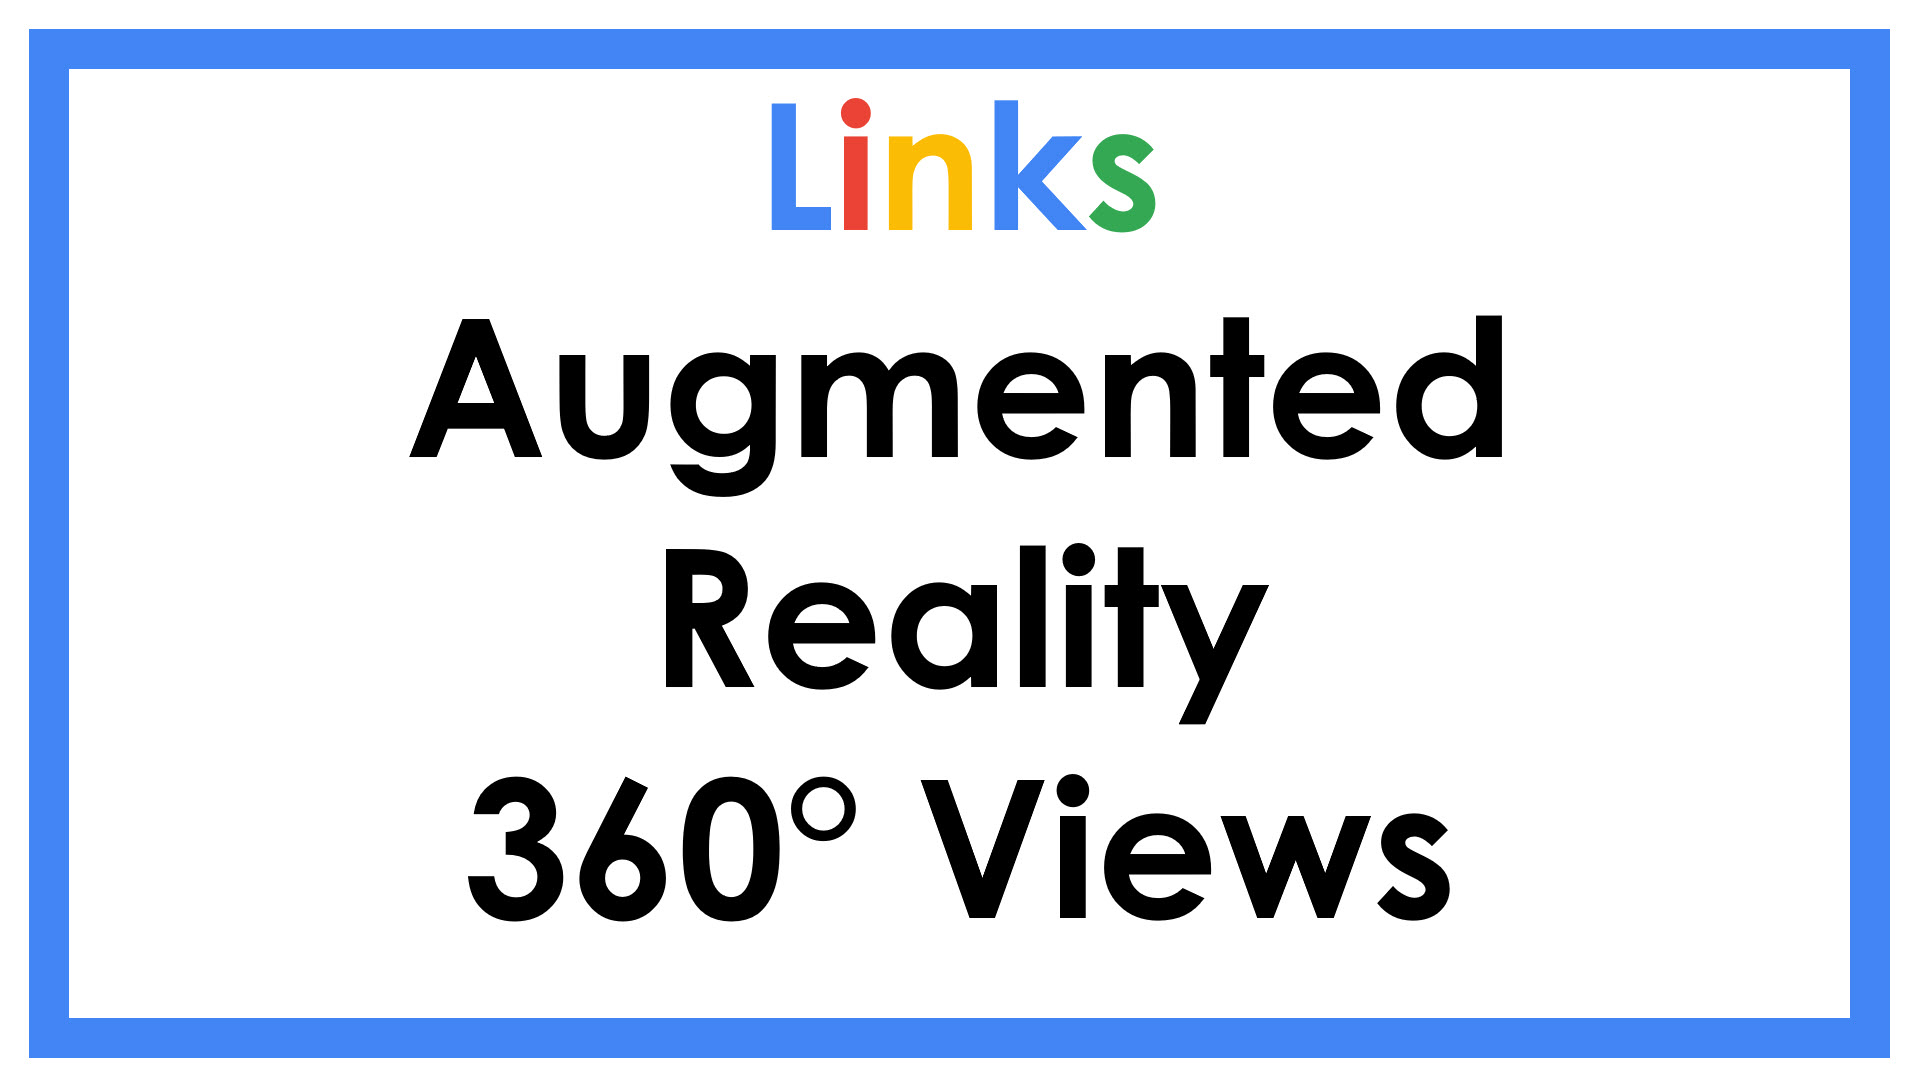 Augmented Reality 360 Views